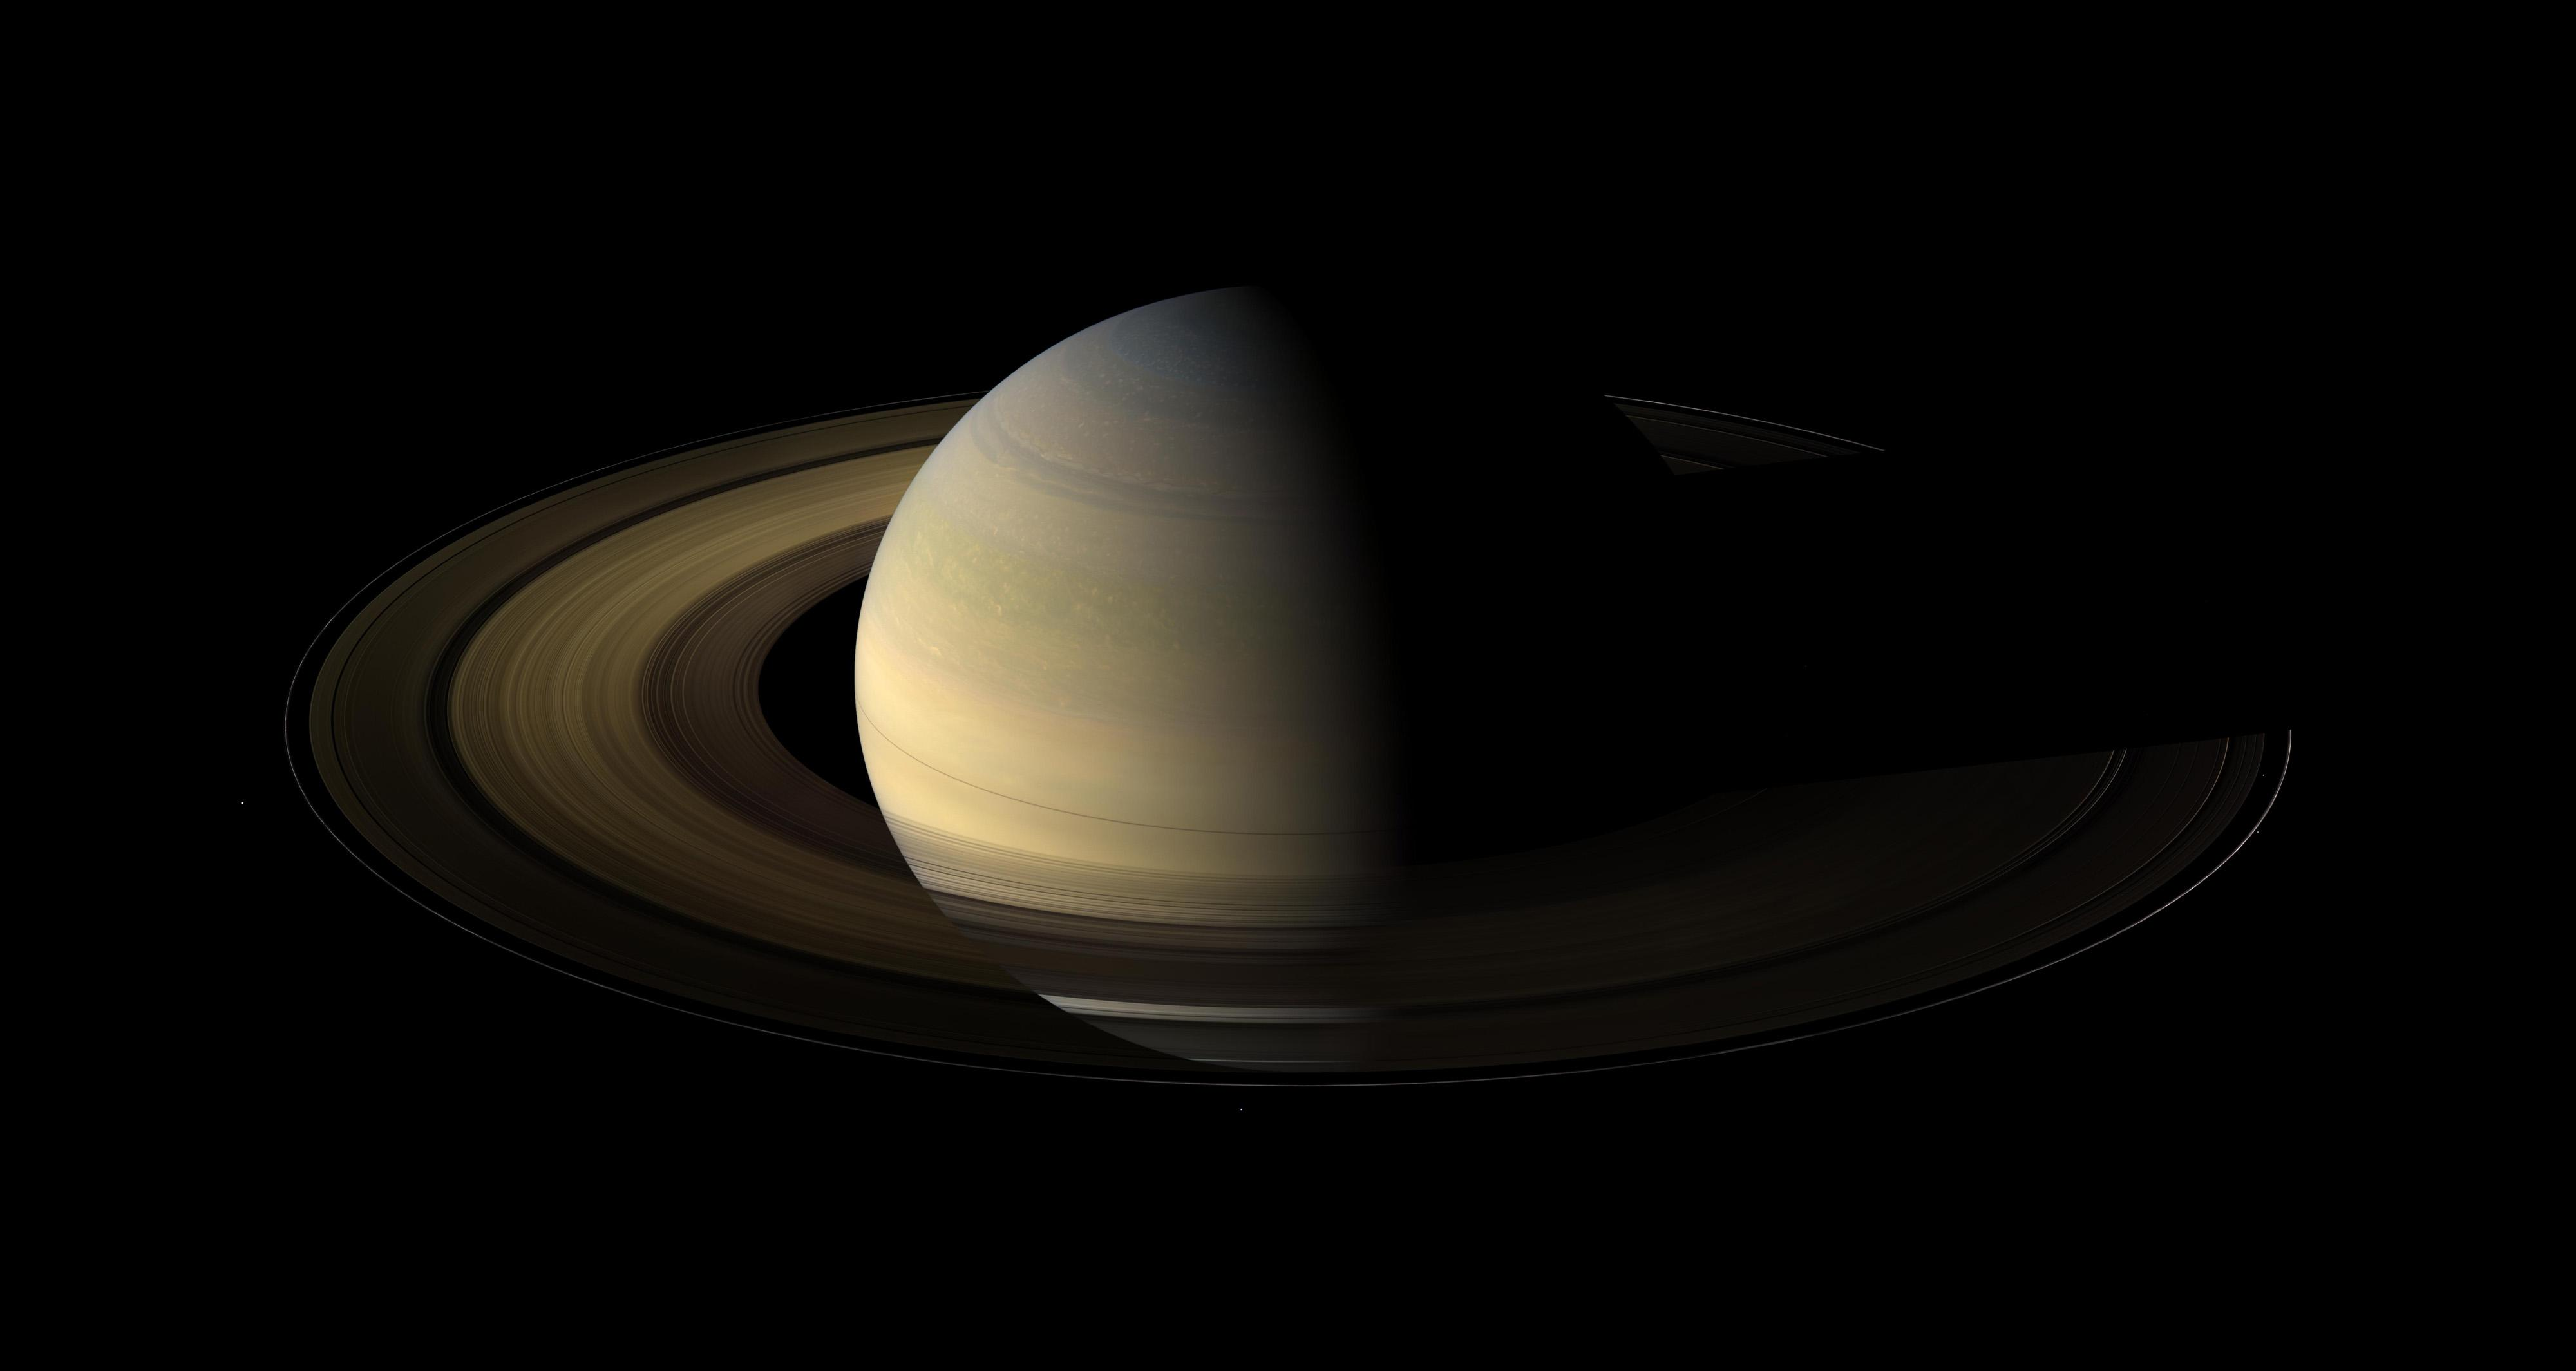 At Saturn, One of These Rings is not like the Others | NASA